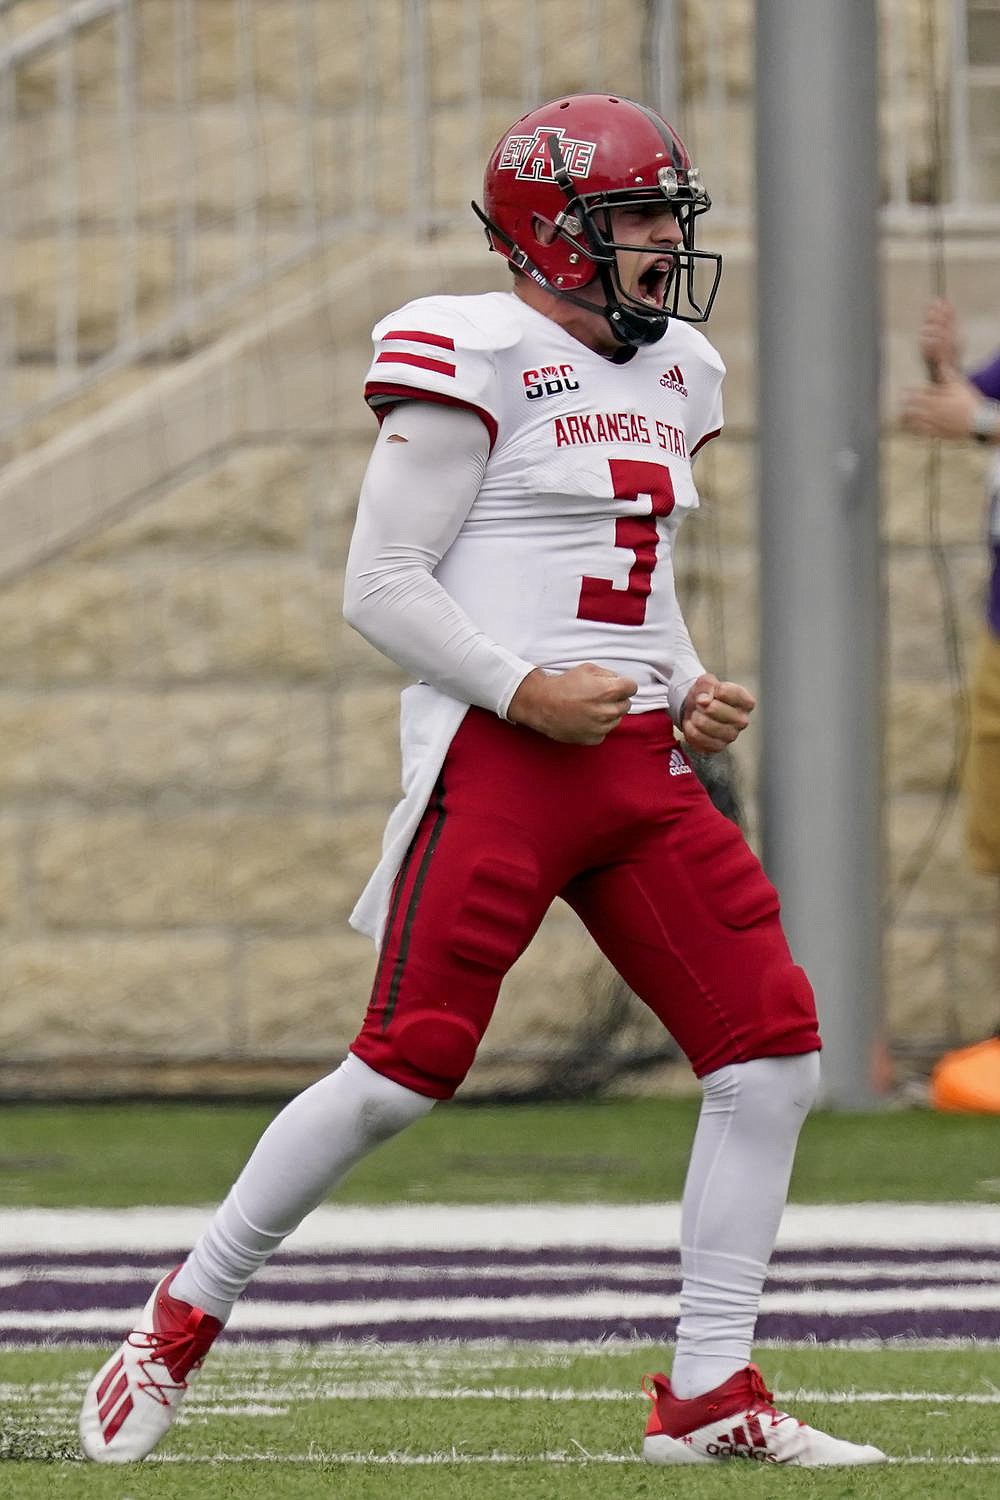 Quarterback Layne Hatcher celebrates after throwing a touchdown pass for Arkansas State during the second half of Saturday's game. (AP/Charlie Riedel)